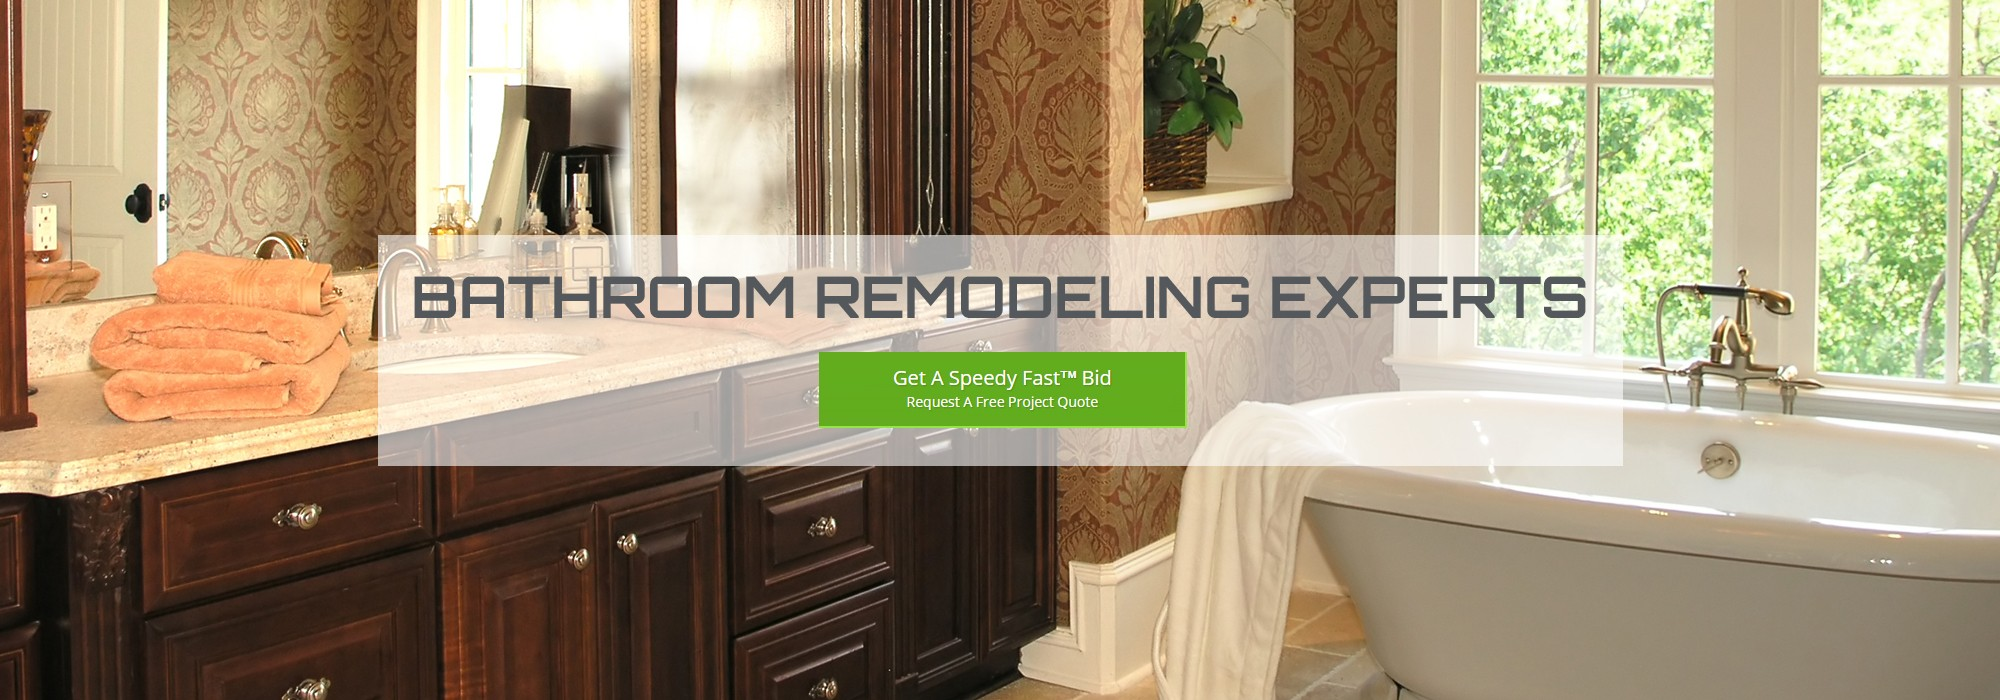 Home Improvement Rolling Meadows | Bathroom Remodel IL | Kitchen Remodel  60008   Home Services Direct